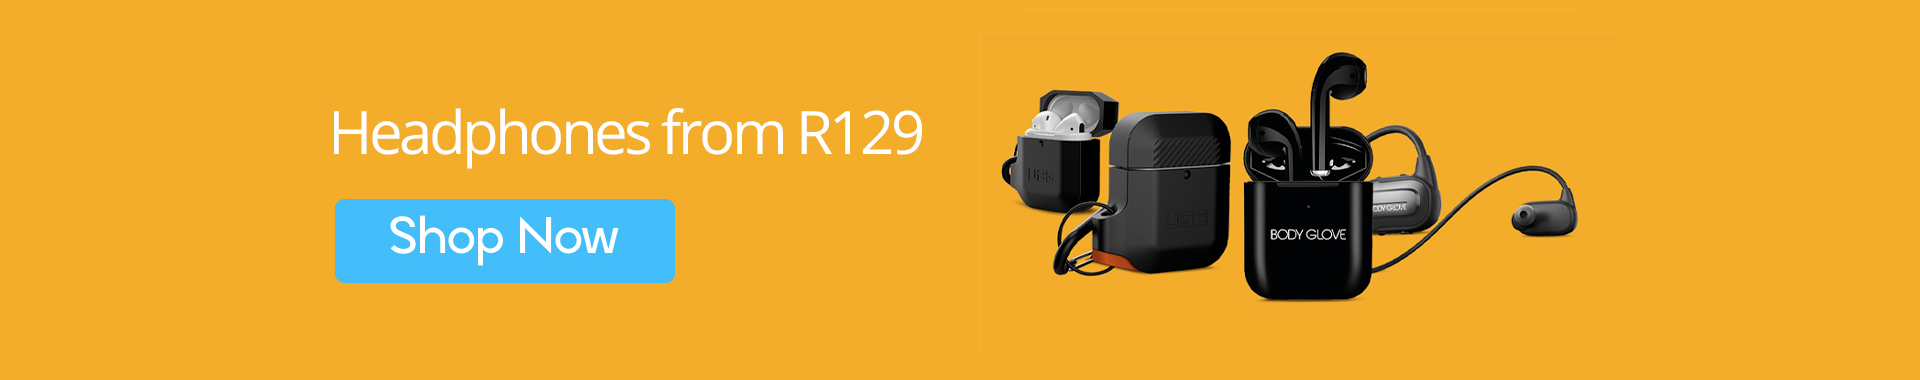 Headphones from R129 only at MondoShop.co.za